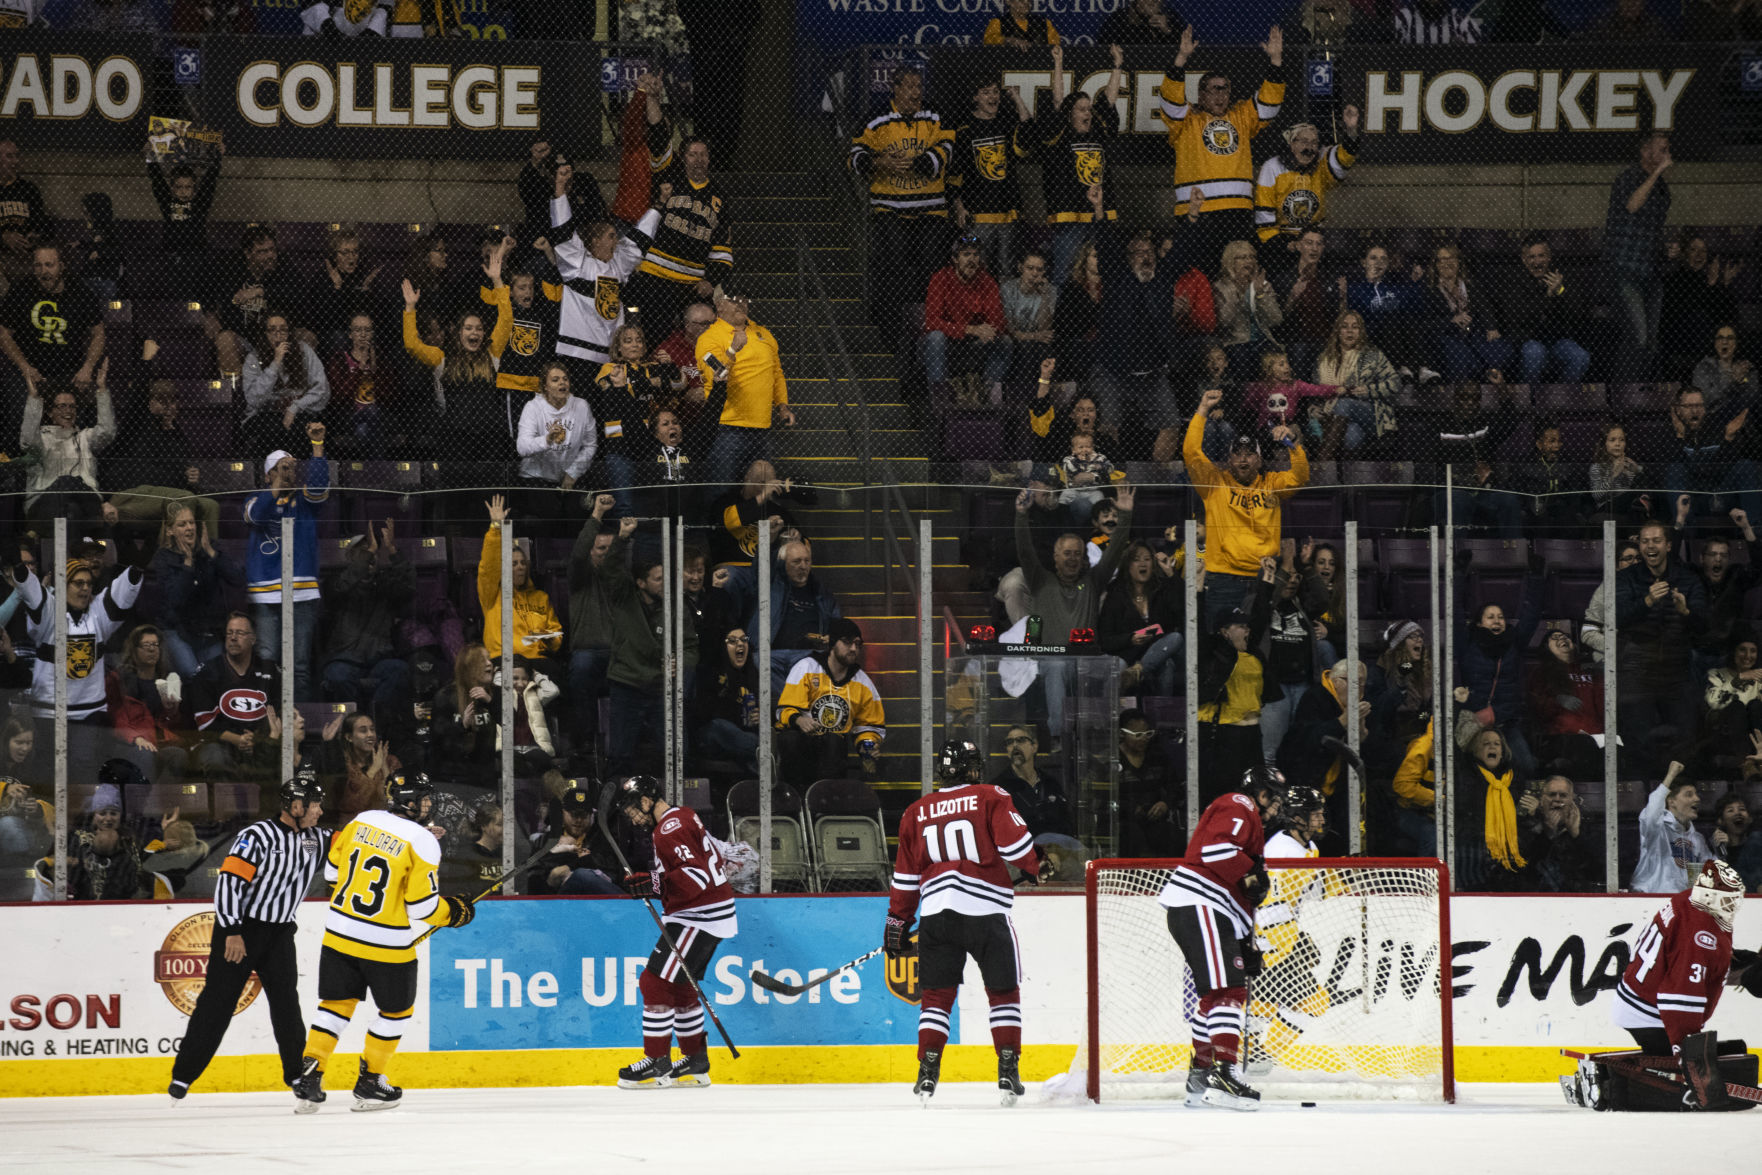 NCHC: Extra Passion In Play As Gold Pan Rivalry Renewed Between Colorado College And Denver